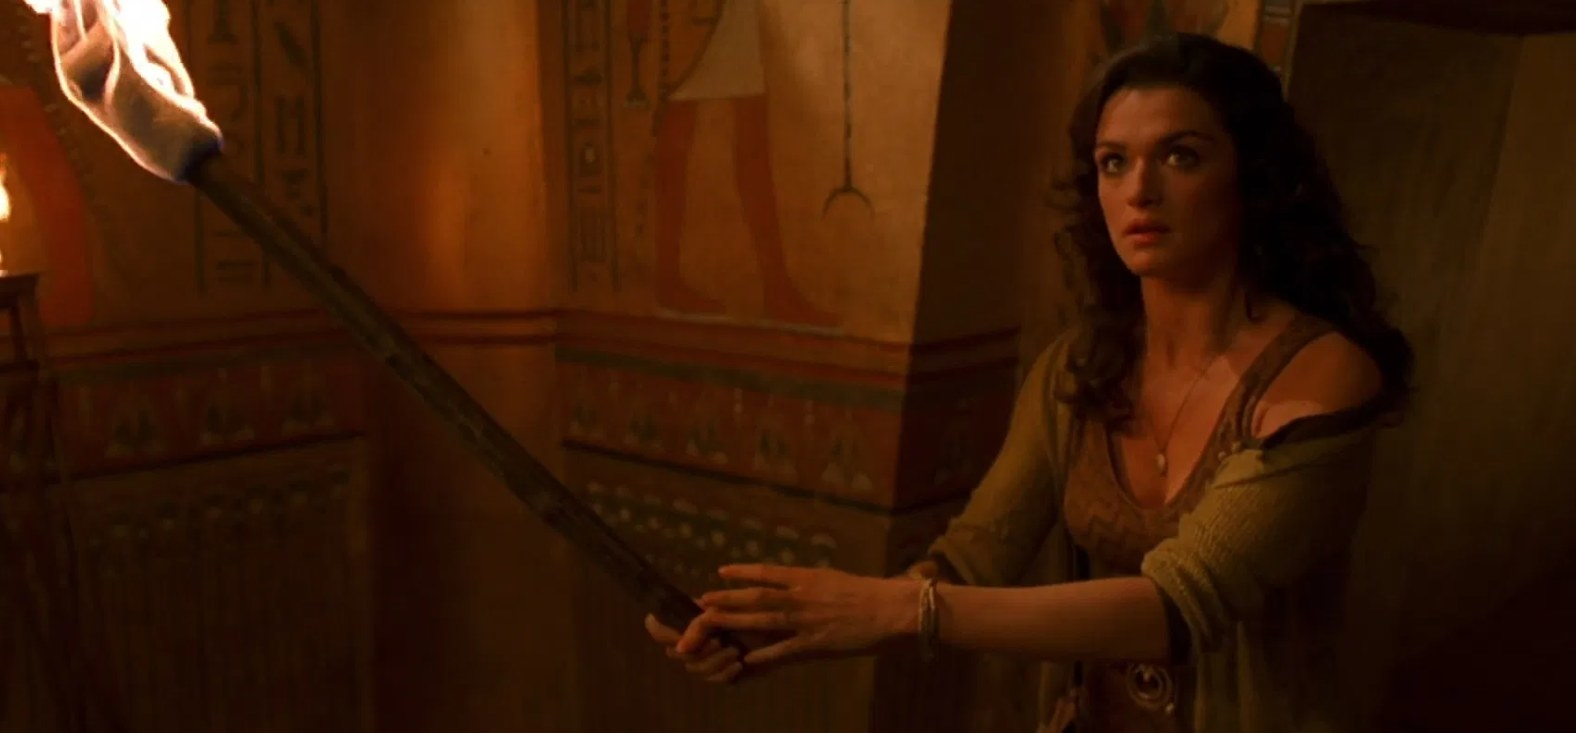 Evie stands in a chamber with hieroglyphics on the walls and holds a fire torch